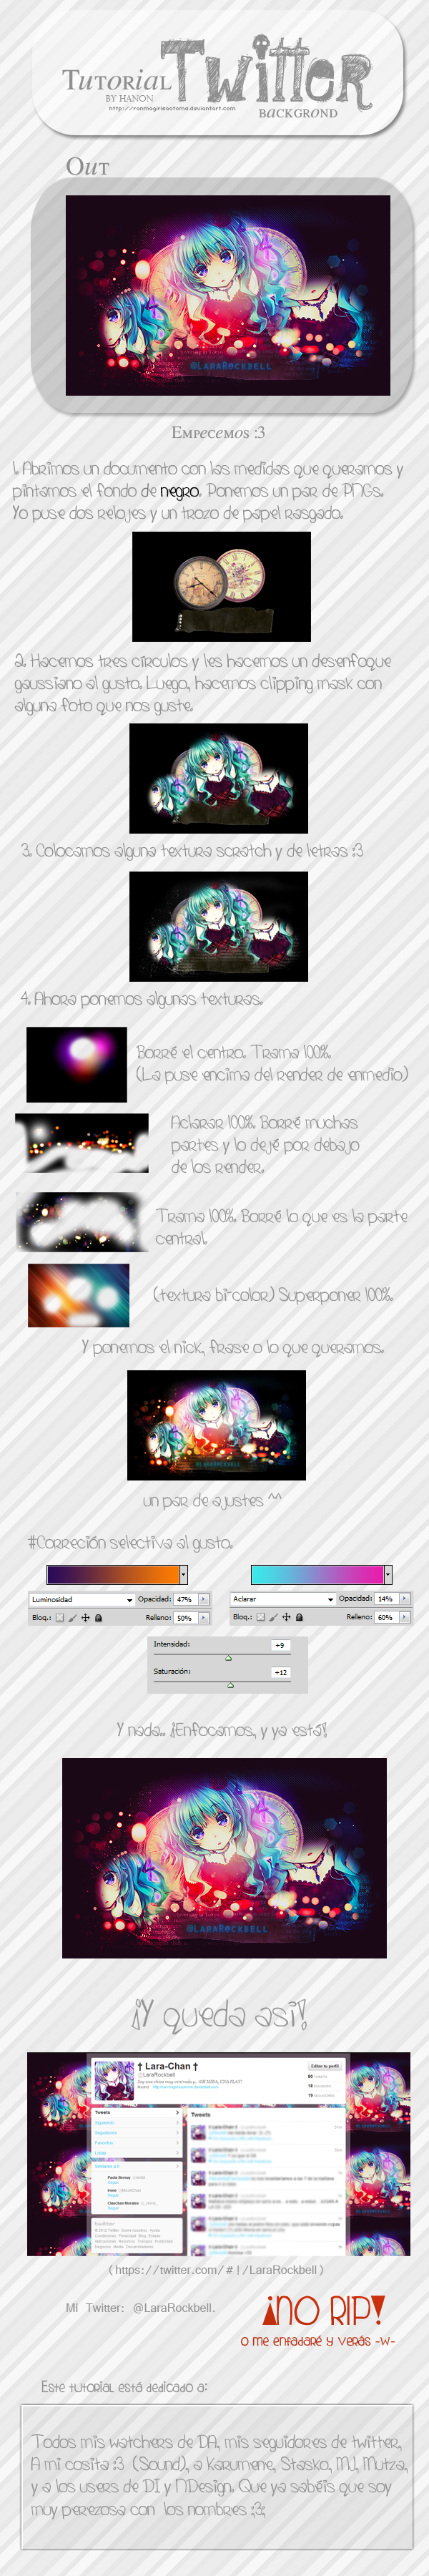 Twitter Background tutorial Twitter_background_tutorial_by_ranmagirlsaotome-d4sirlr